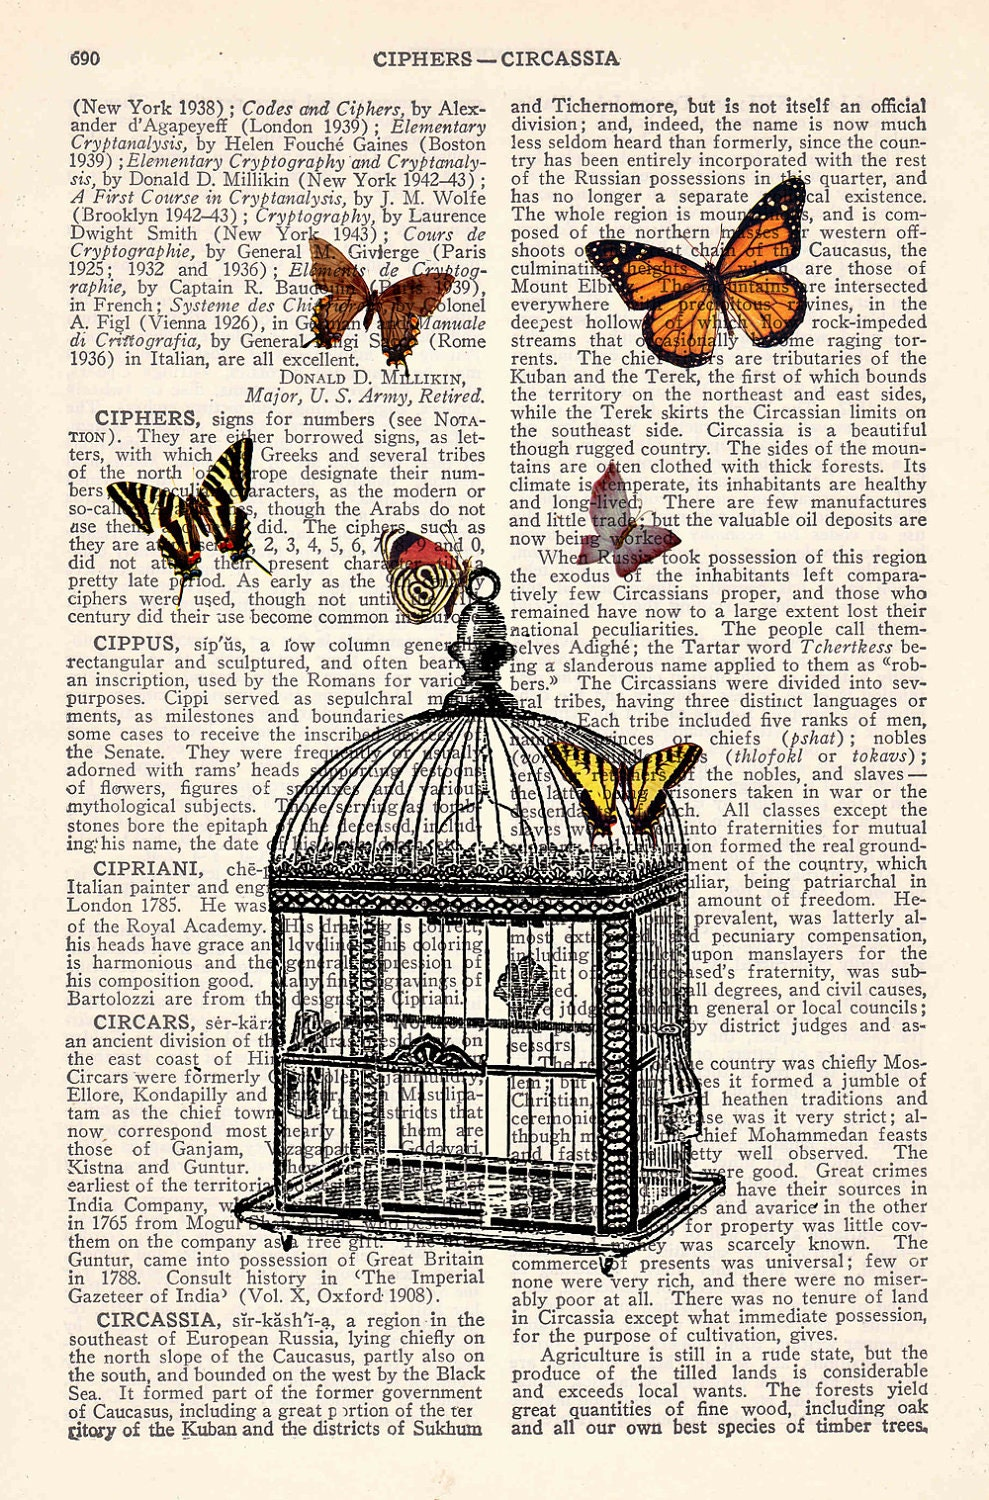 Butterfly collage Vintage Book Print Dictionary or Encyclopedia Page Print-Release the butterflies - Butterflies cage Print